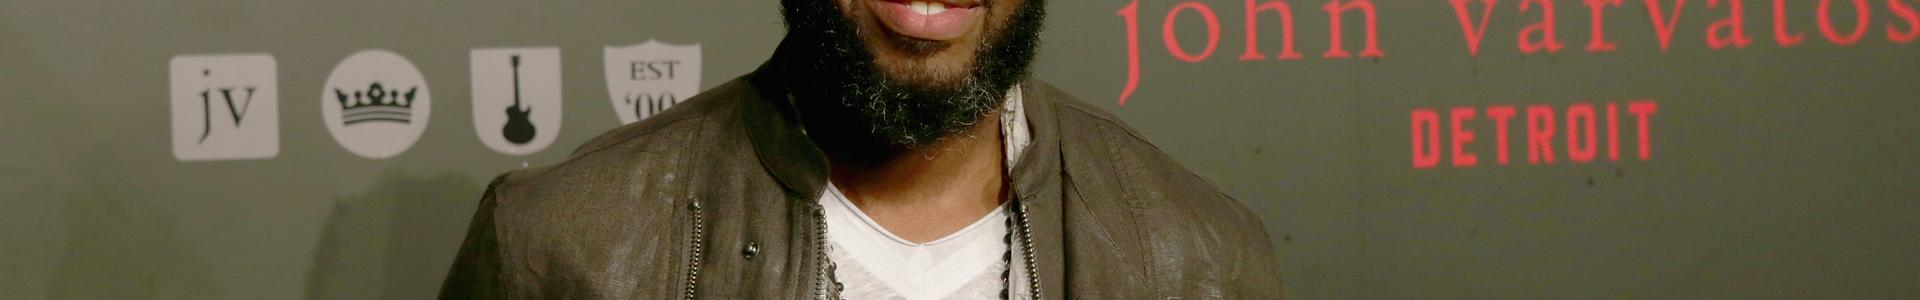 dwele greater than one download